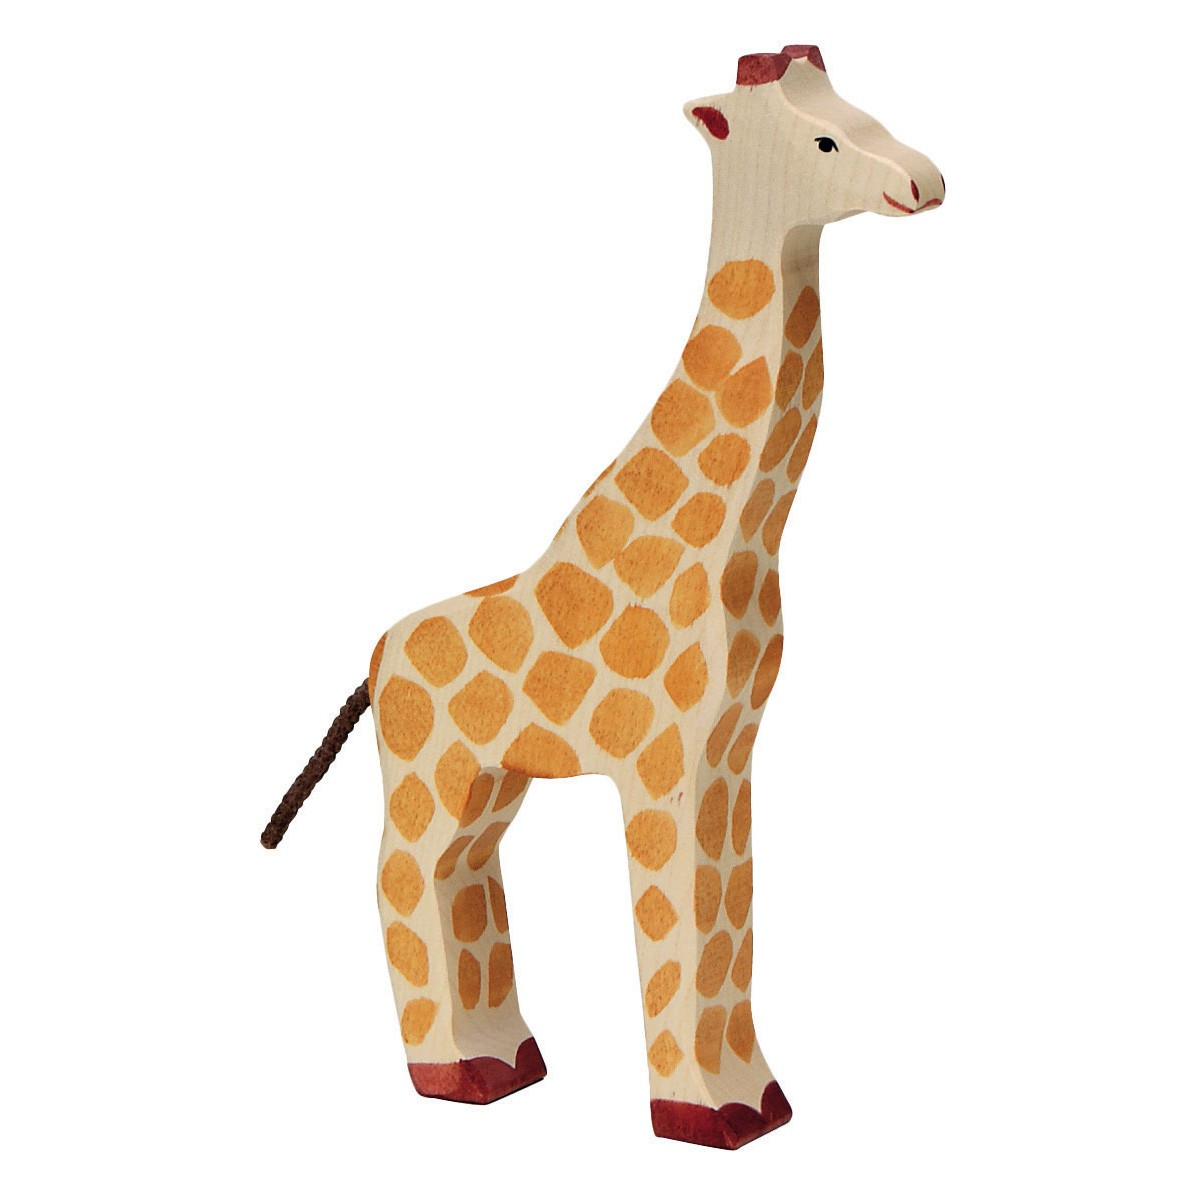 Animals & Dinosaurs Holztiger Giraffe Wooden Figure Toys & Hobbies